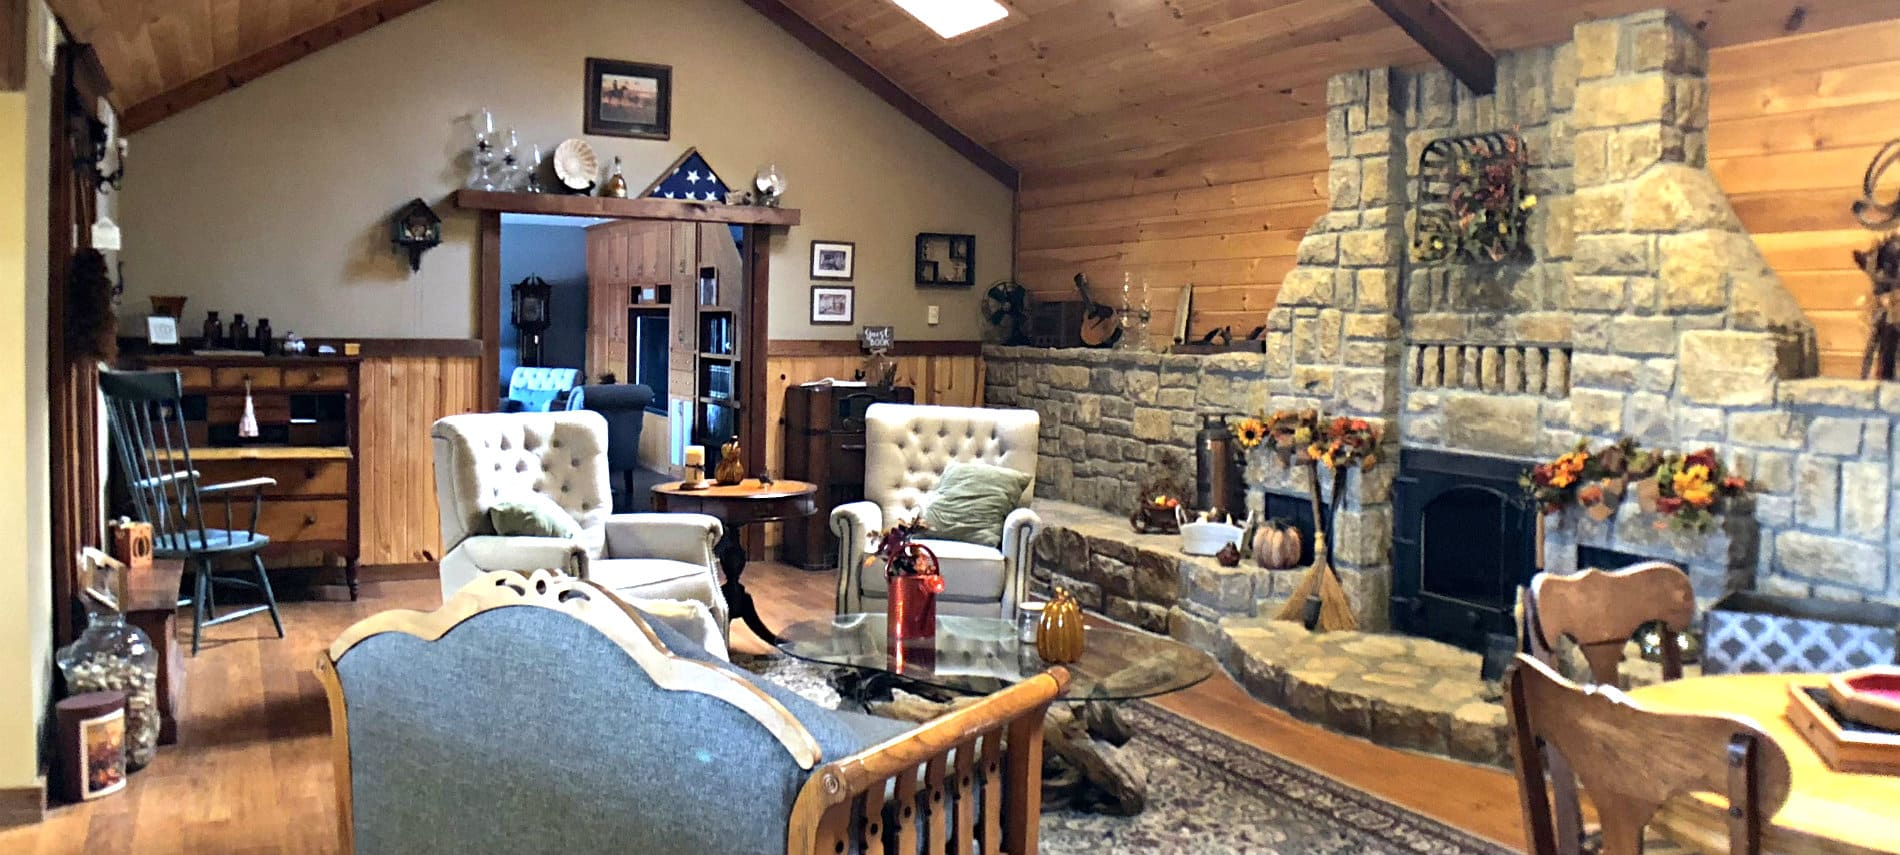 Large vaulted room with wood floors, stone fireplace, dining tables and upholstered chairs